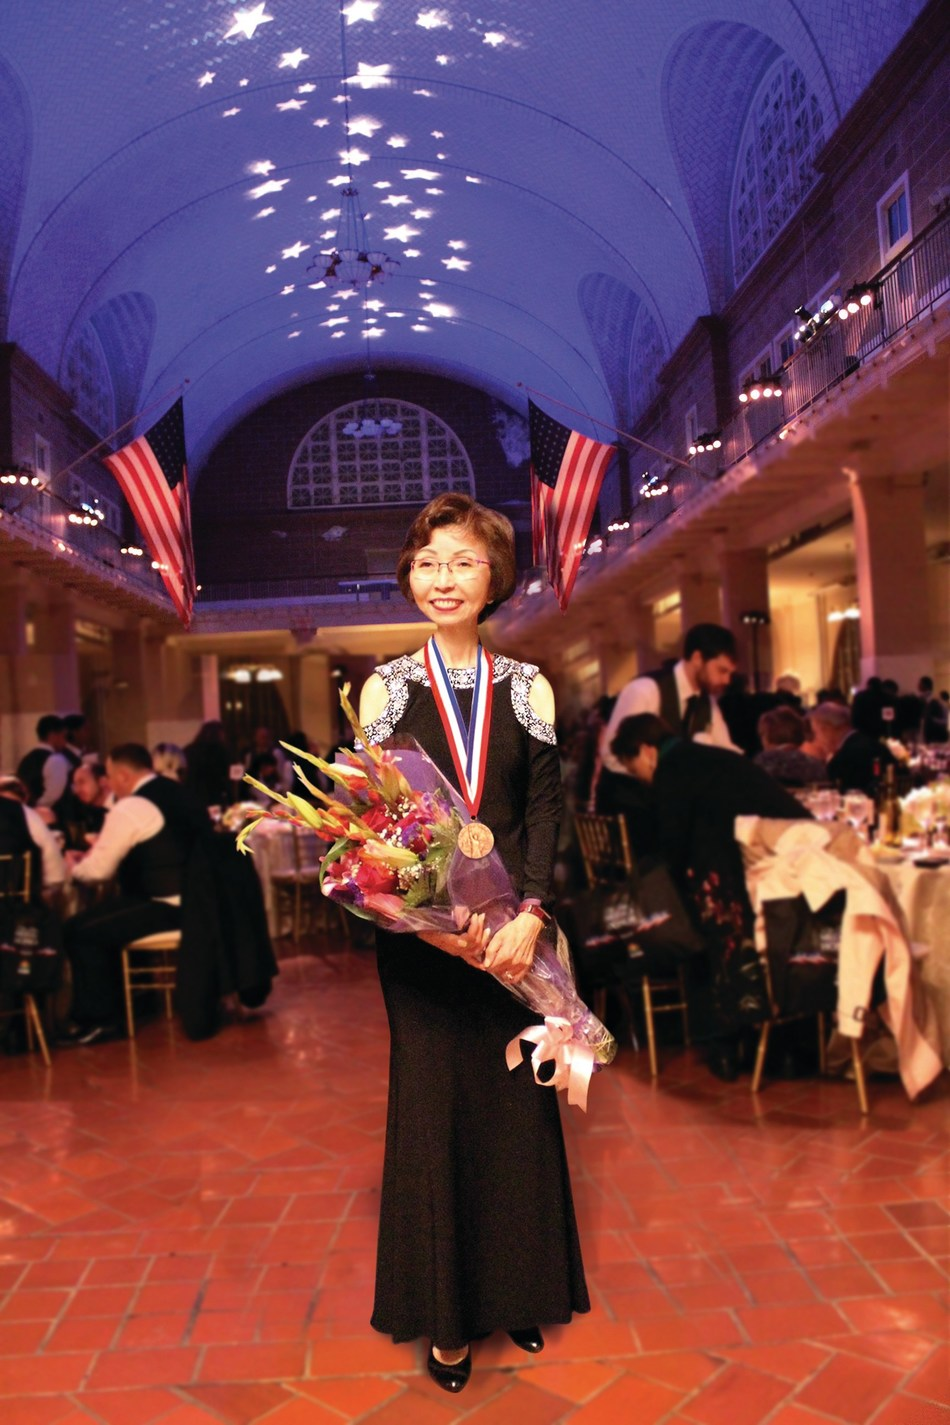 Veronica Tsang of Cathay Bank in the Ellis Island Gallery after being presented with the 2017 Ellis Island Medal of Honor.